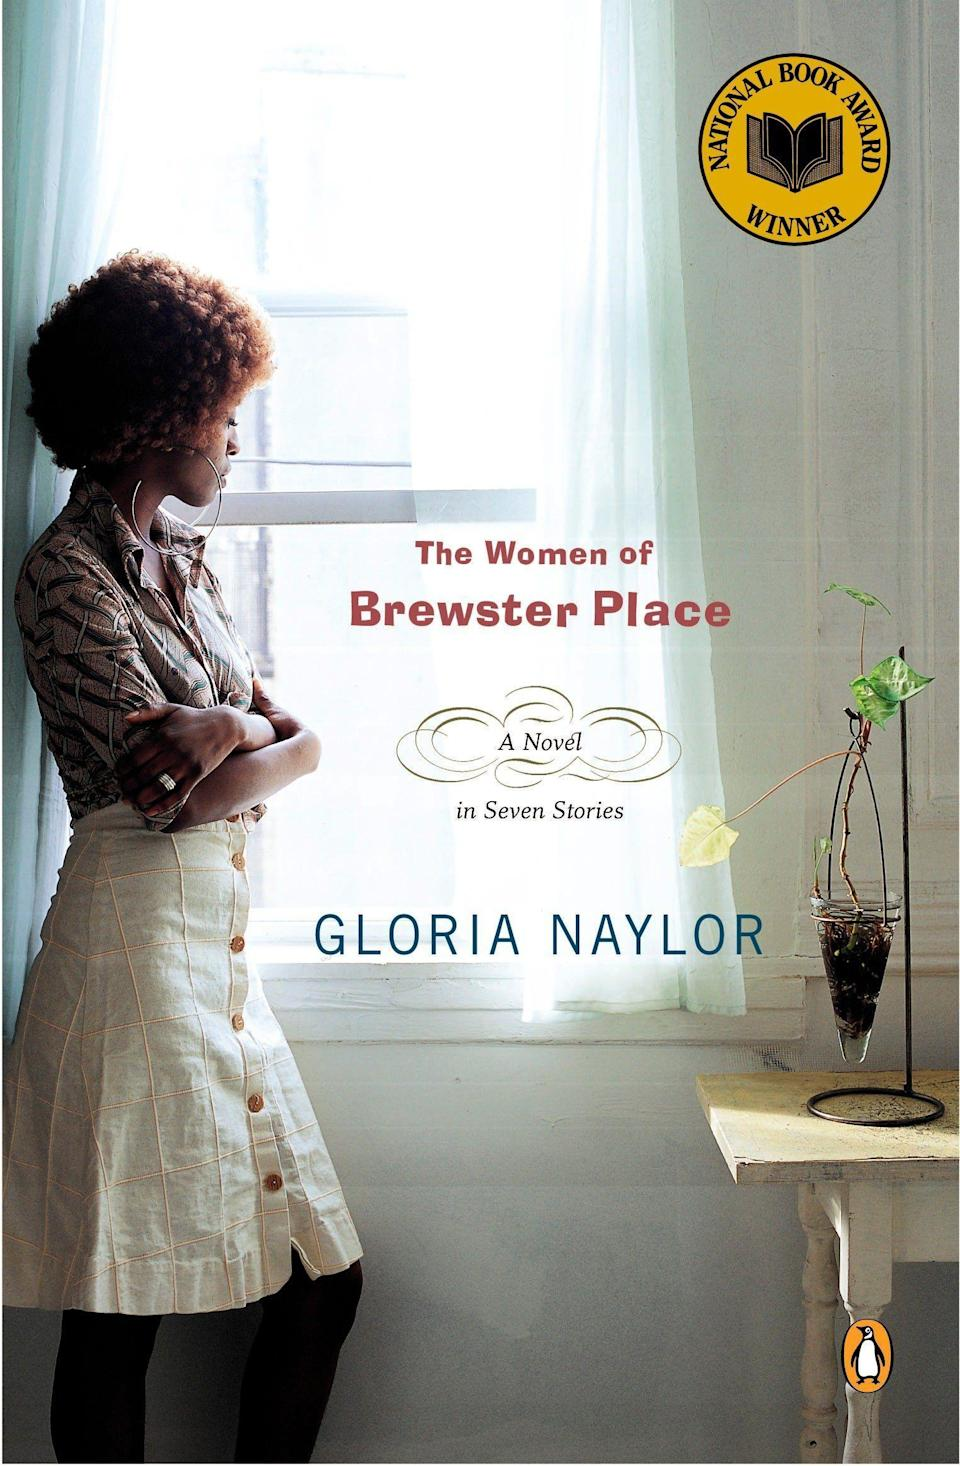 """<p><strong>Gloria Naylor</strong></p><p>amazon.com</p><p><strong>$12.39</strong></p><p><a href=""""https://www.amazon.com/dp/014006690X?tag=syn-yahoo-20&ascsubtag=%5Bartid%7C10055.g.22749180%5Bsrc%7Cyahoo-us"""" rel=""""nofollow noopener"""" target=""""_blank"""" data-ylk=""""slk:Shop Now"""" class=""""link rapid-noclick-resp"""">Shop Now</a></p><p>This book weaves together the worlds of seven women in a bleak inner-city sanctuary called Brewster Place. It offers an eye-opening portrayal of just how many paths a woman's life can take, as well as the struggles, strengths, and fierce hope of black women in America. </p>"""